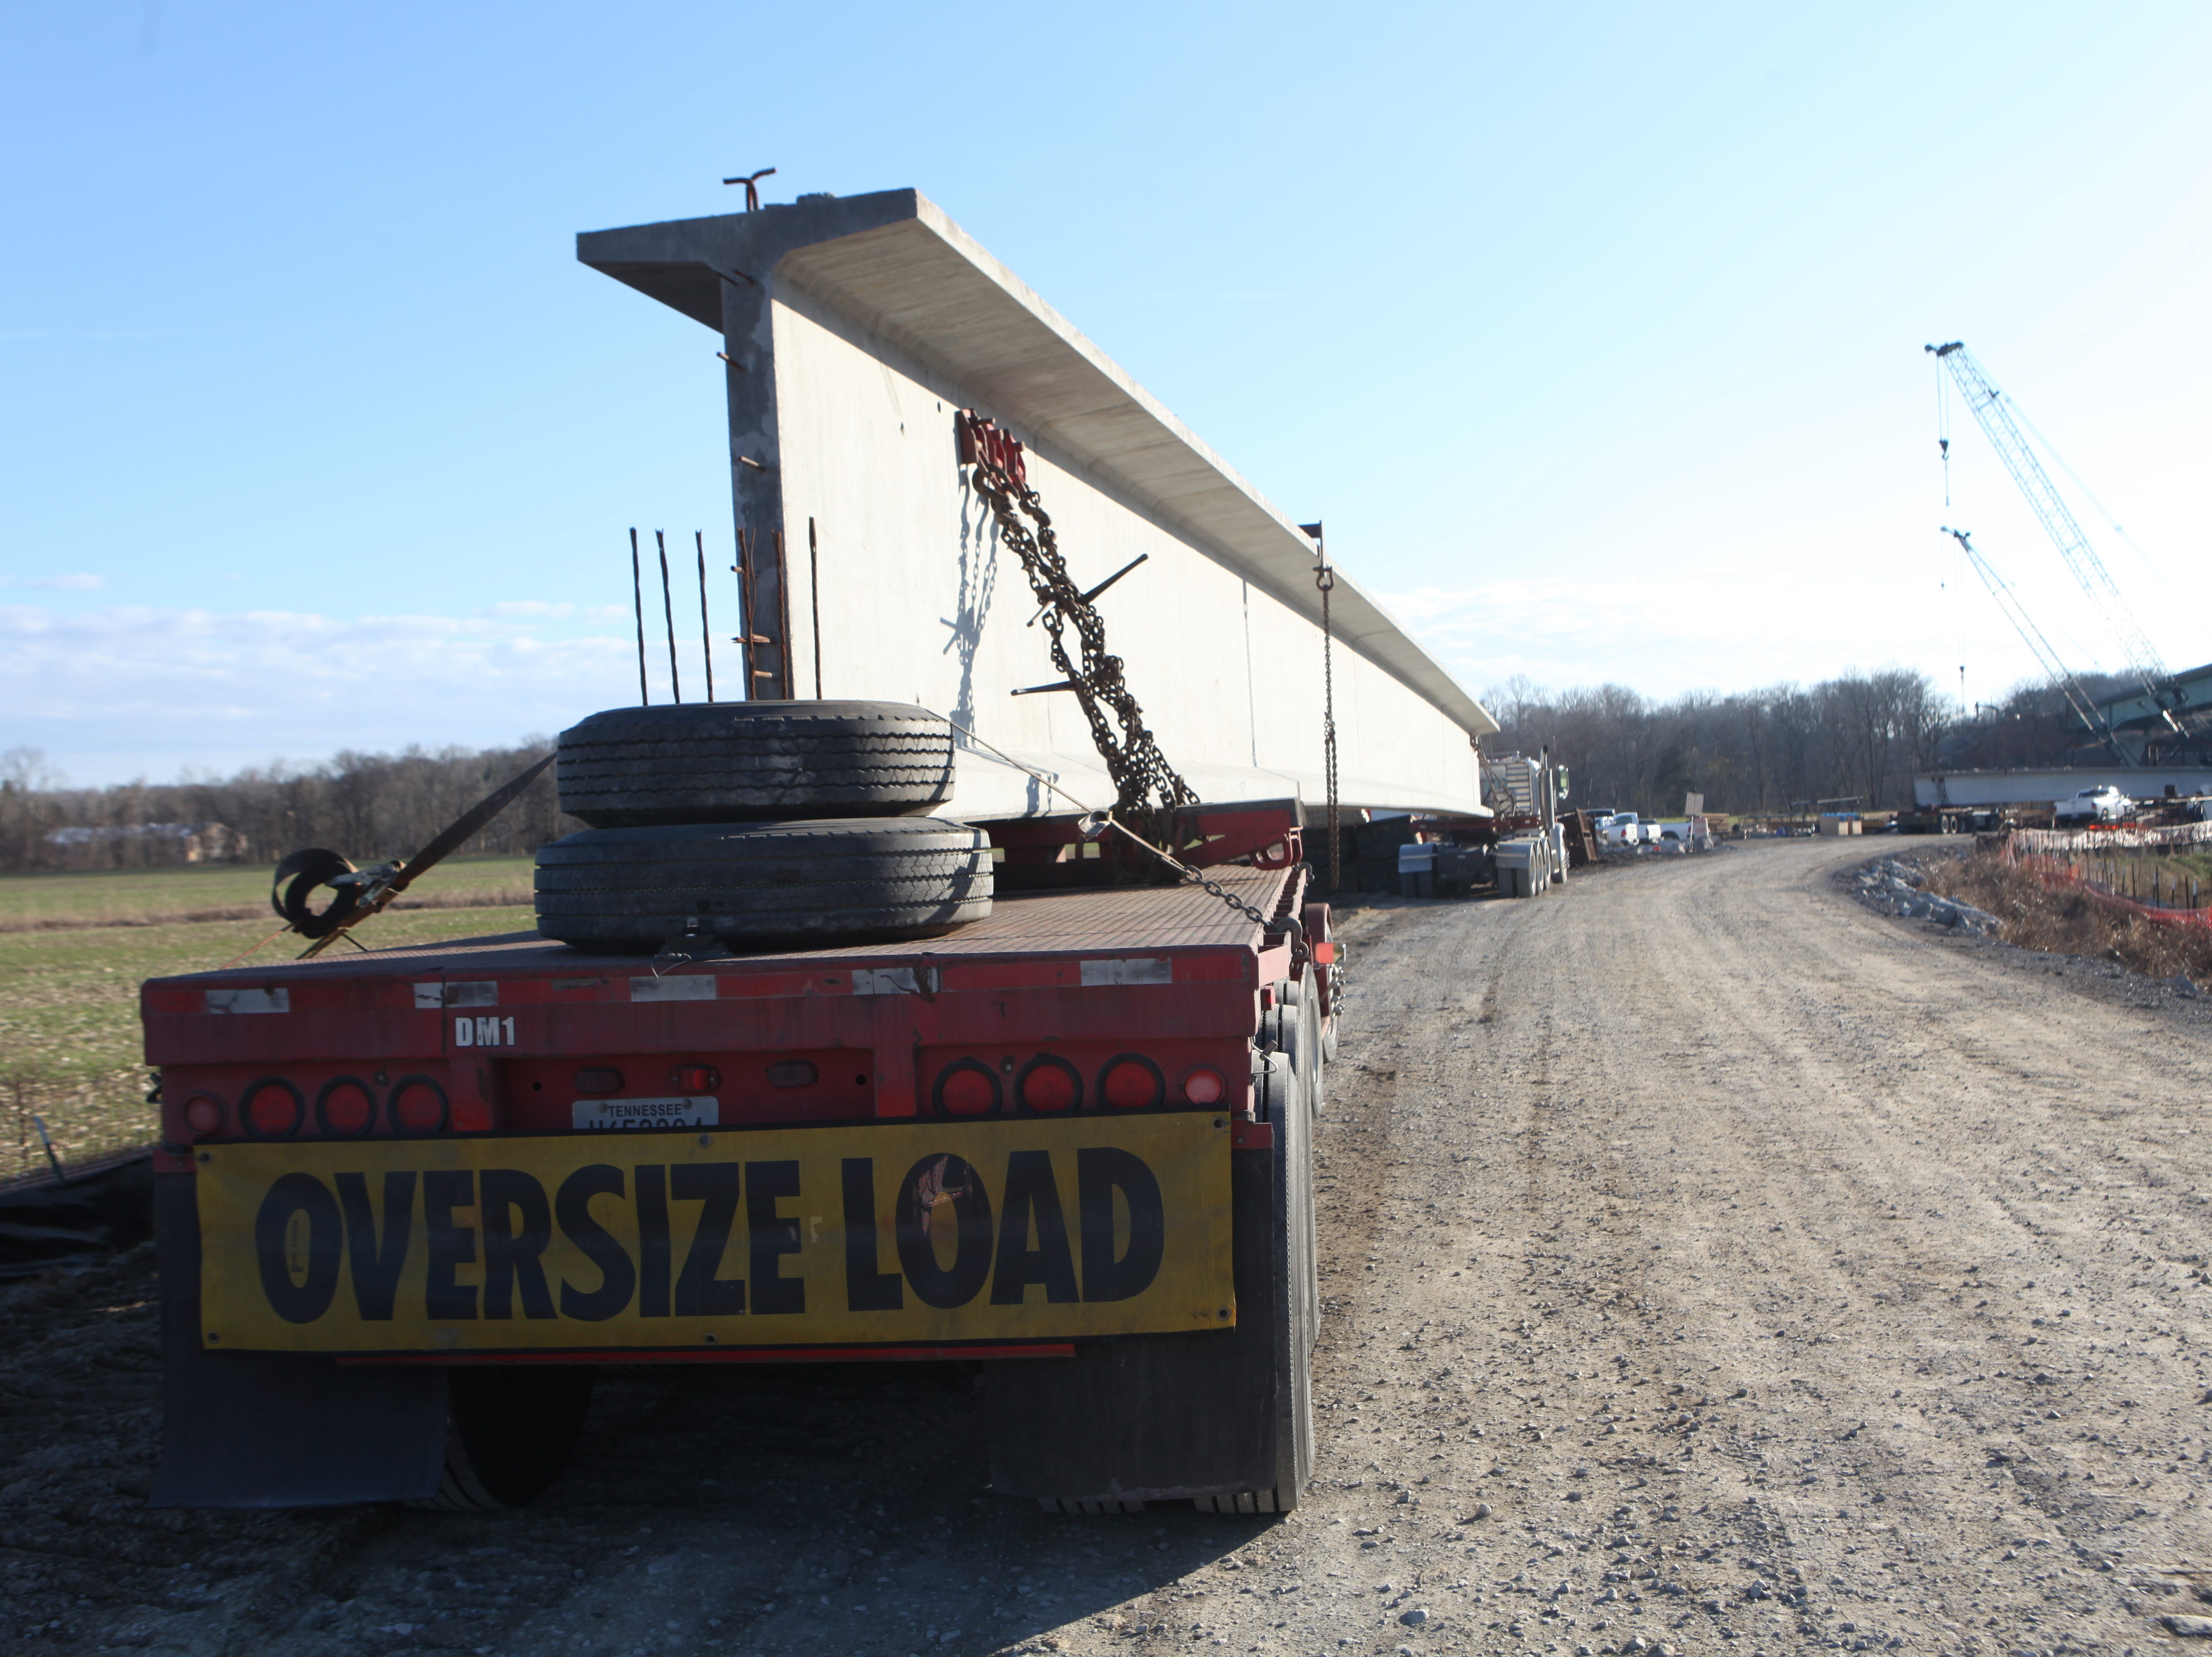 130-foot-long steel beams arrive and are prepared for installation at the McClure Bridge construction site in February 2019.